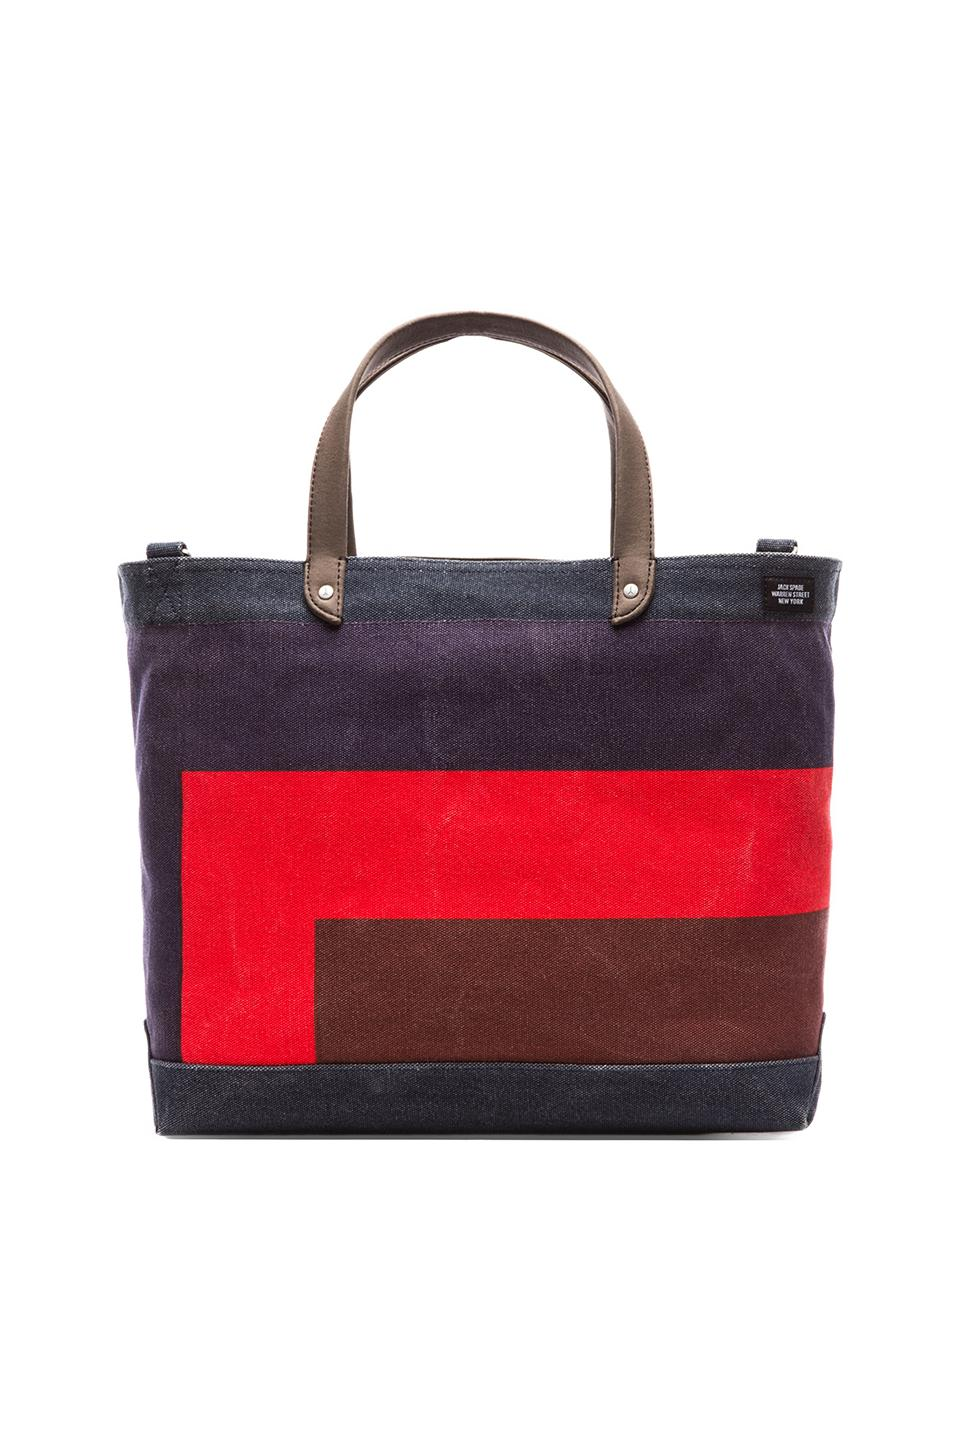 Jack Spade Color Theory Coal Bag in Navy